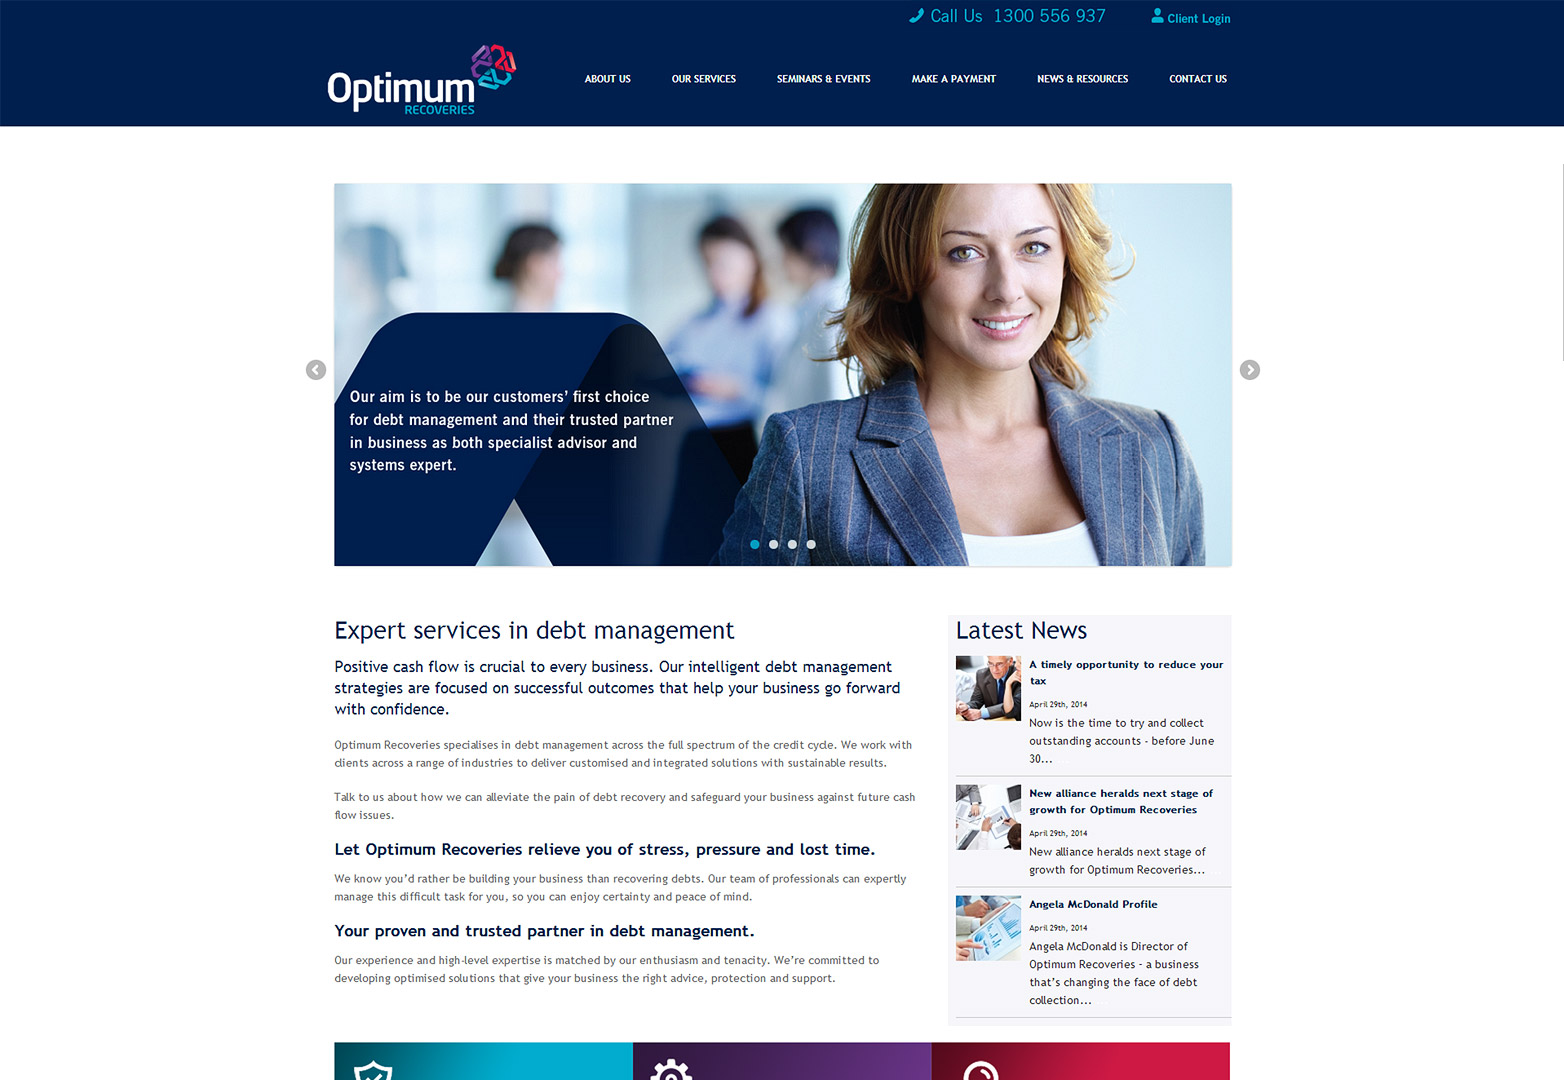 webdesign_optimum01